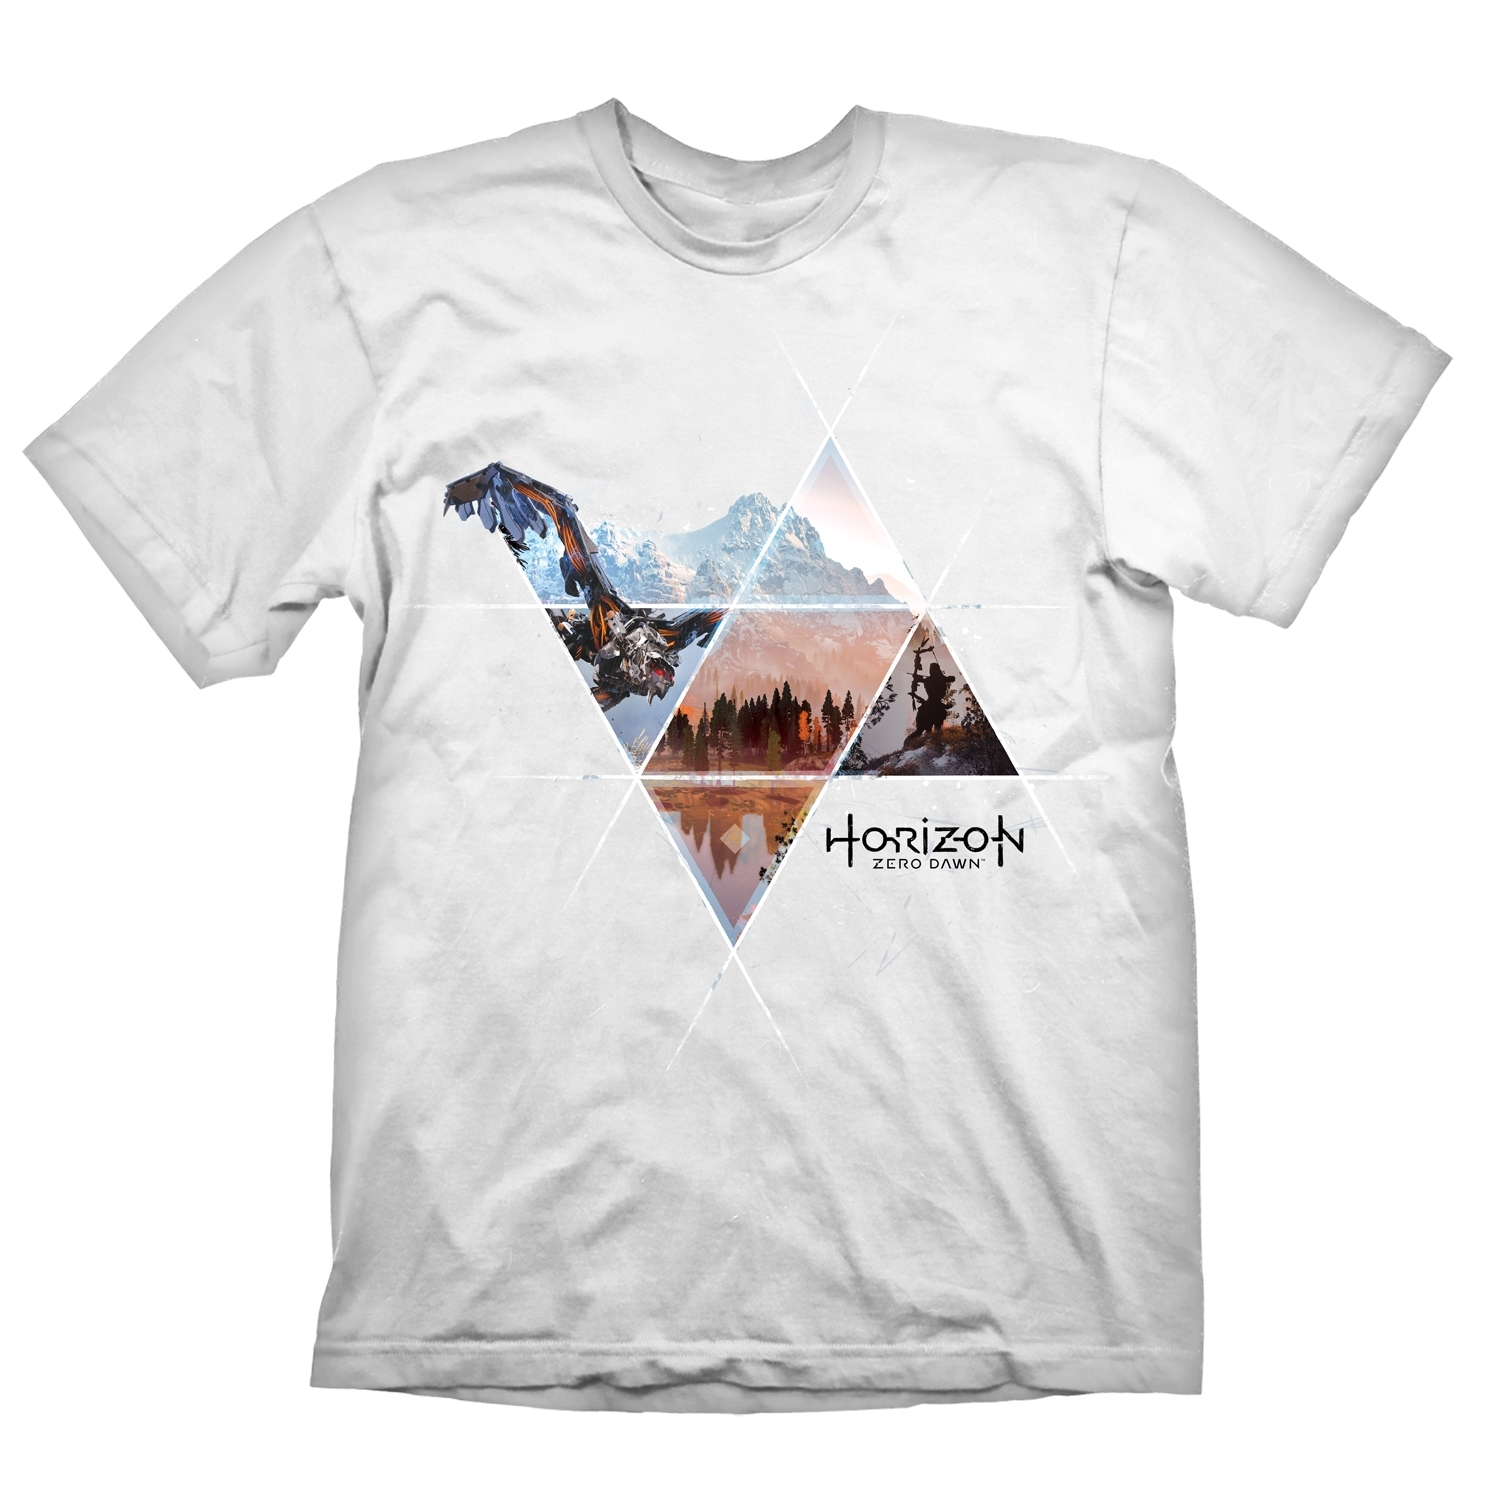 Horizon Zero Dawn Vast Lands T-Shirt (Small) image